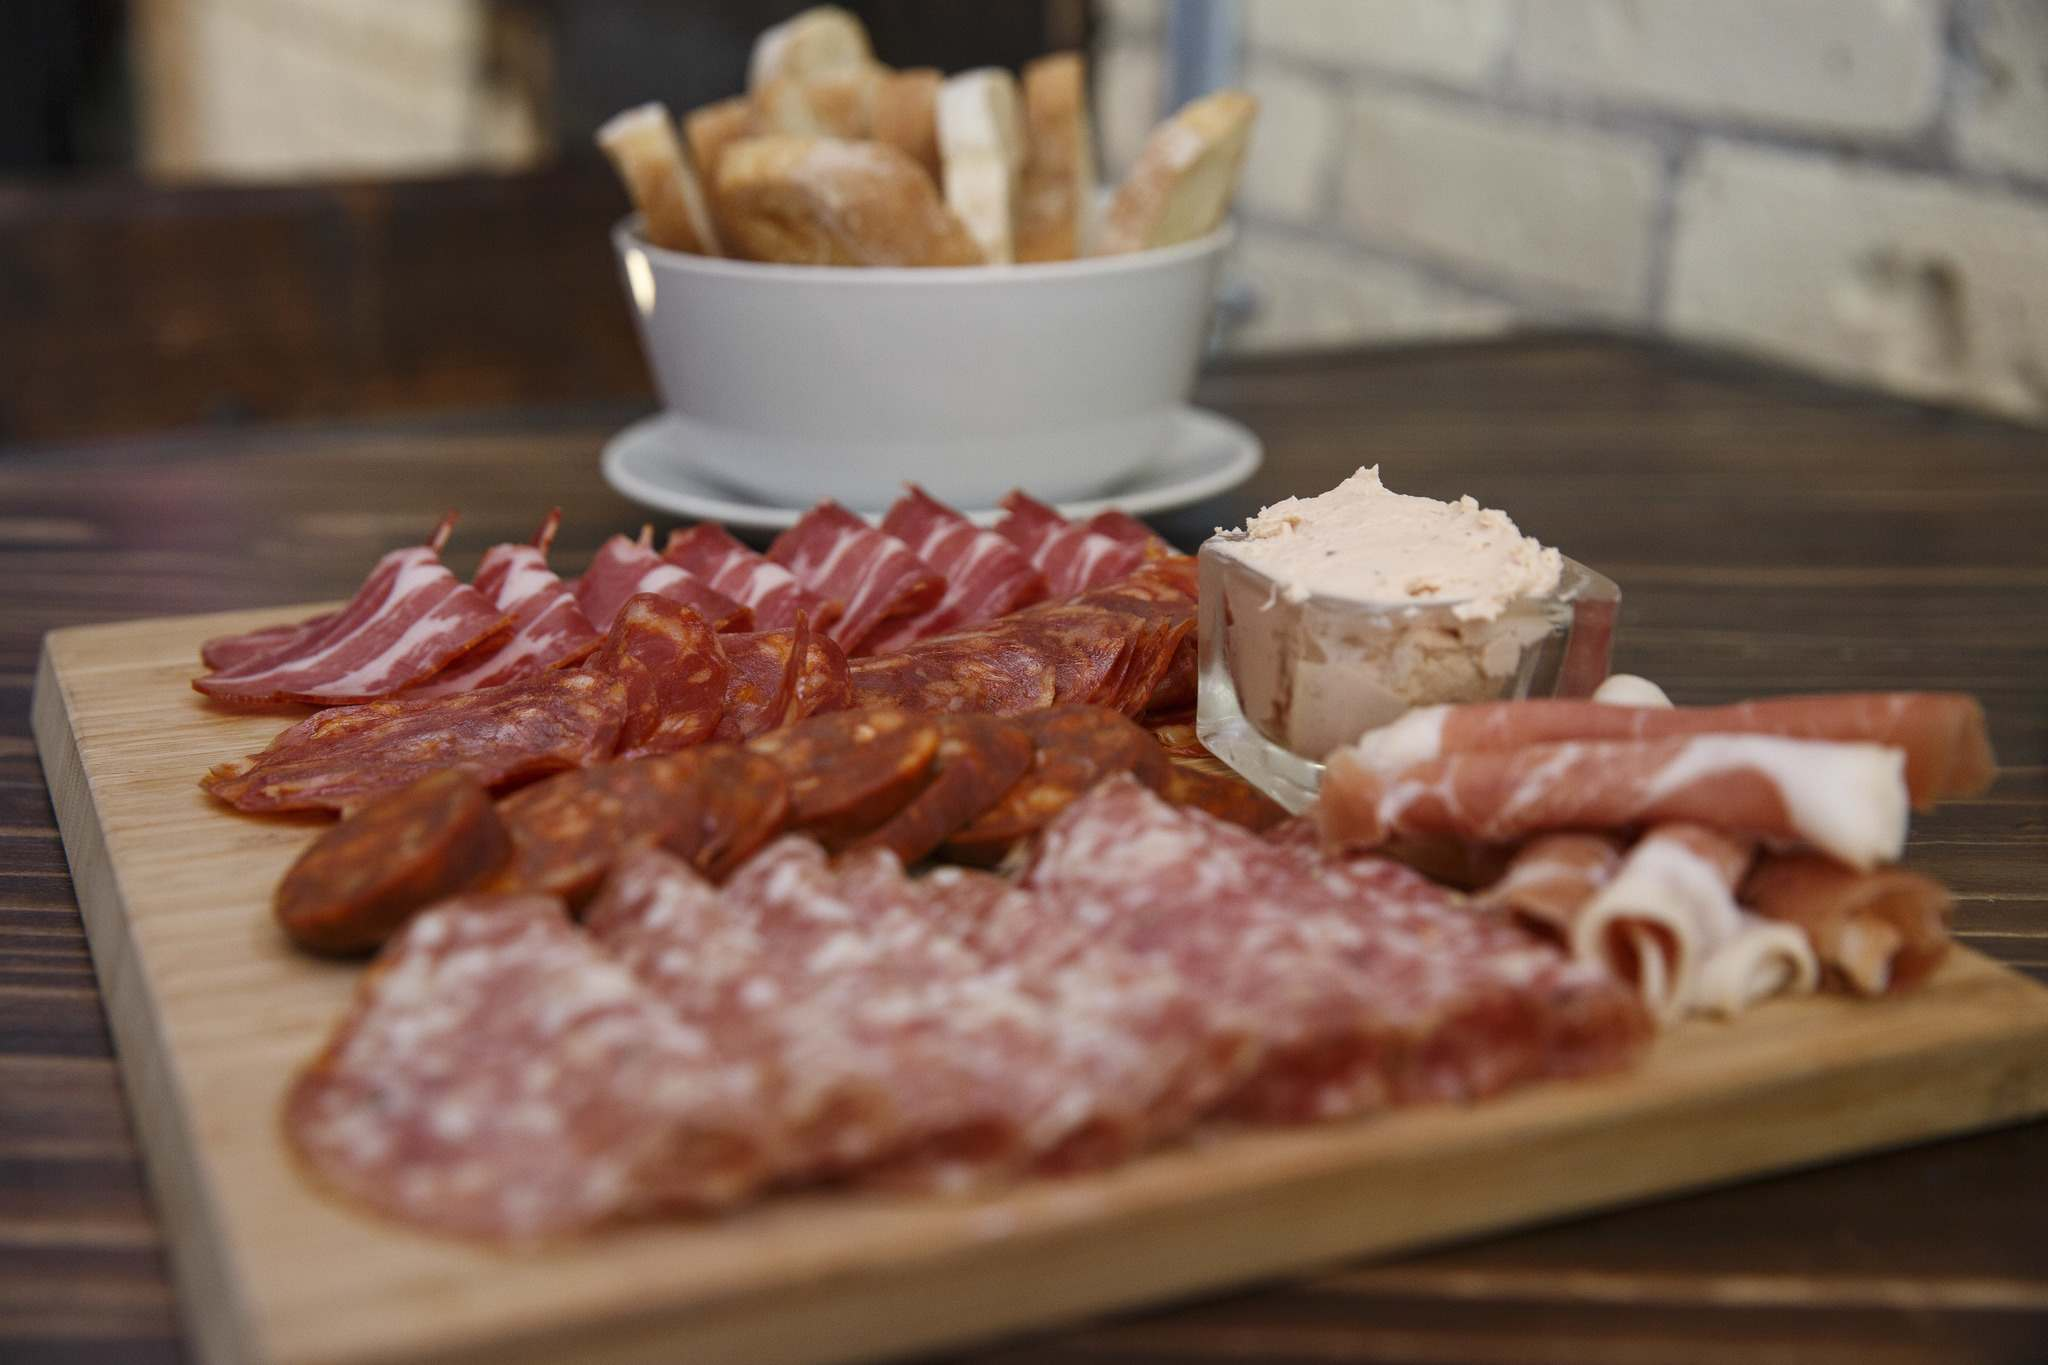 MIKE DEAL / WINNIPEG FREE PRESS</p><p>Cured meats and bread at the Amsterdam Tea Room and Bar.</p>